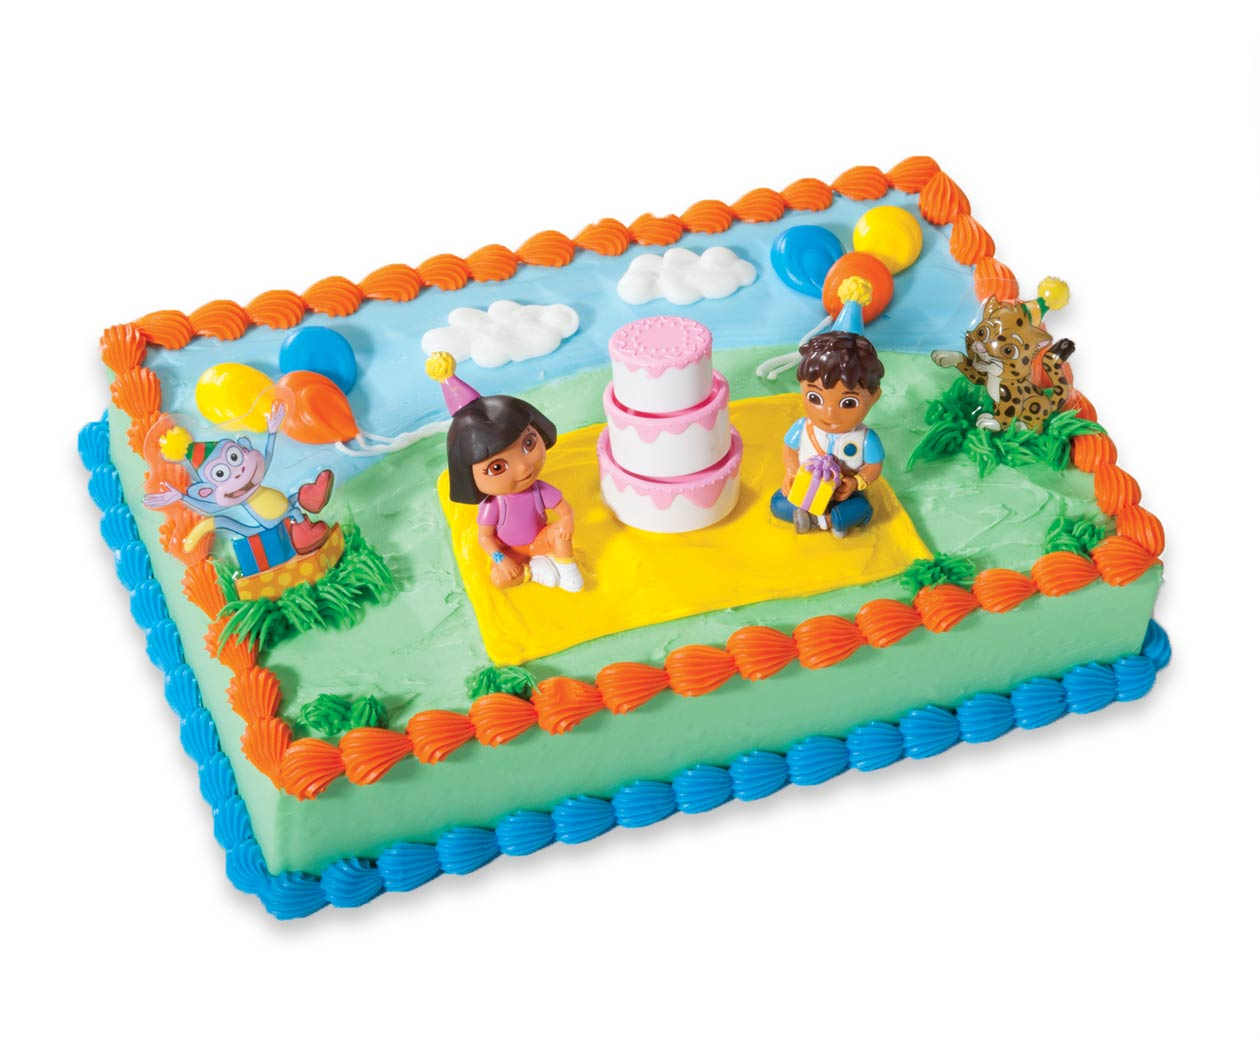 Order A Kids Birthday Cake At Cold Stone Creamery - Go diego go birthday cake